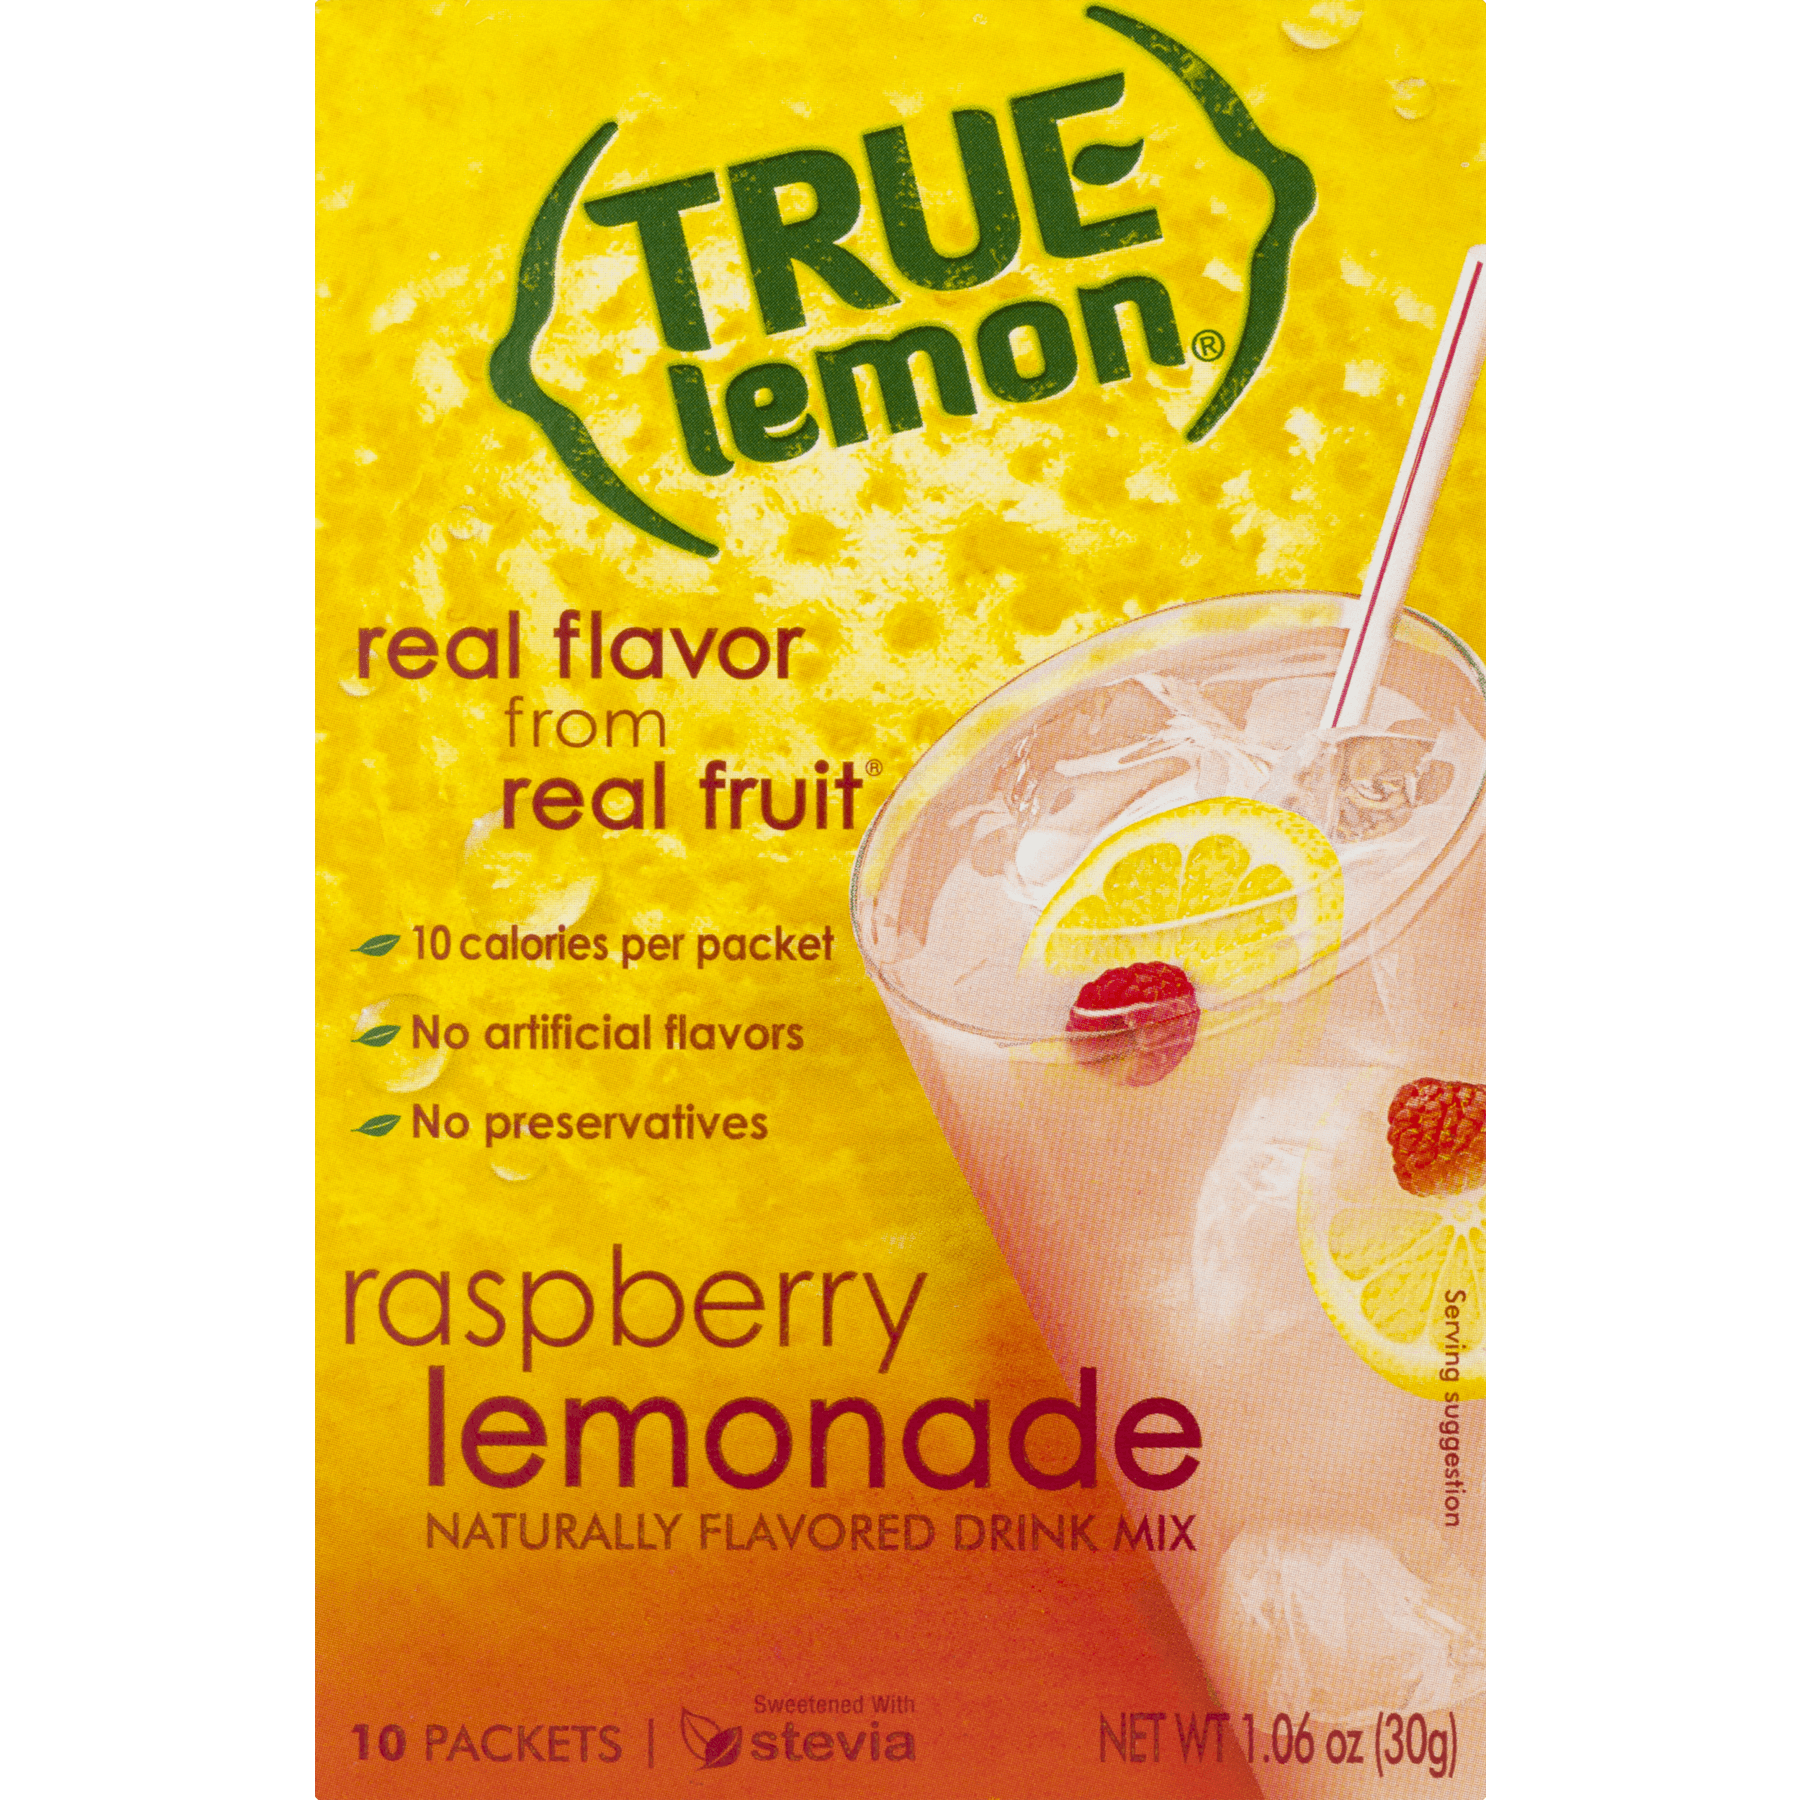 True Lemon Drink Mix, 1.06 Oz, Raspberry, 10 Packets, 1 Box